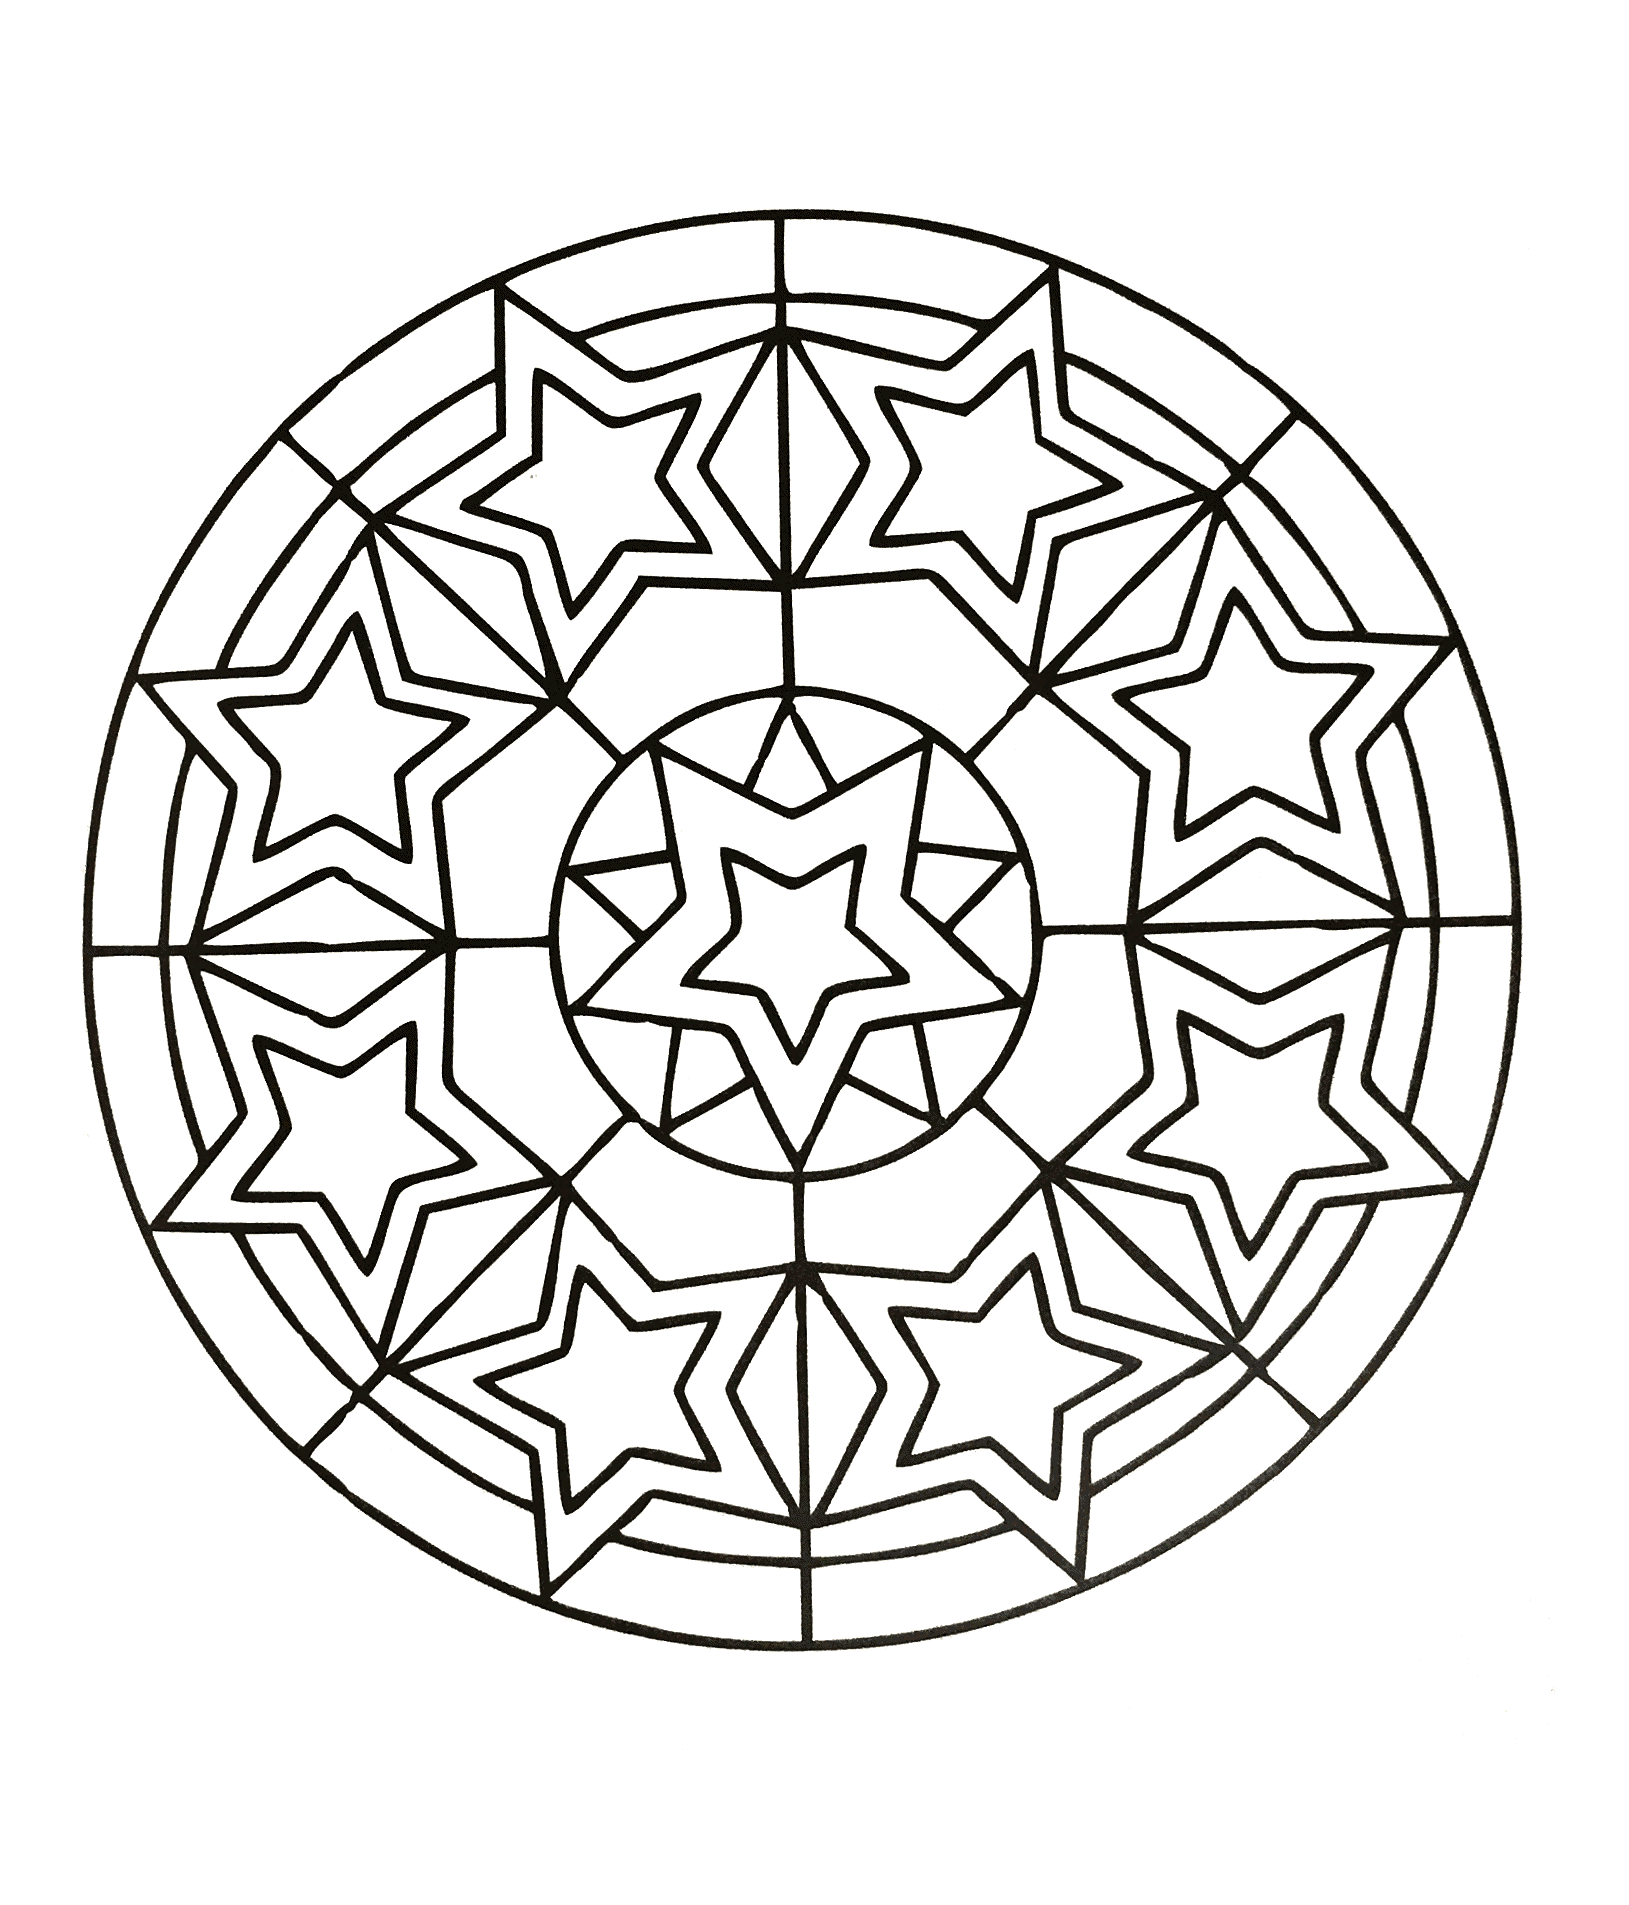 simple mandala 78 mandalas coloring pages for kids to print u0026 color